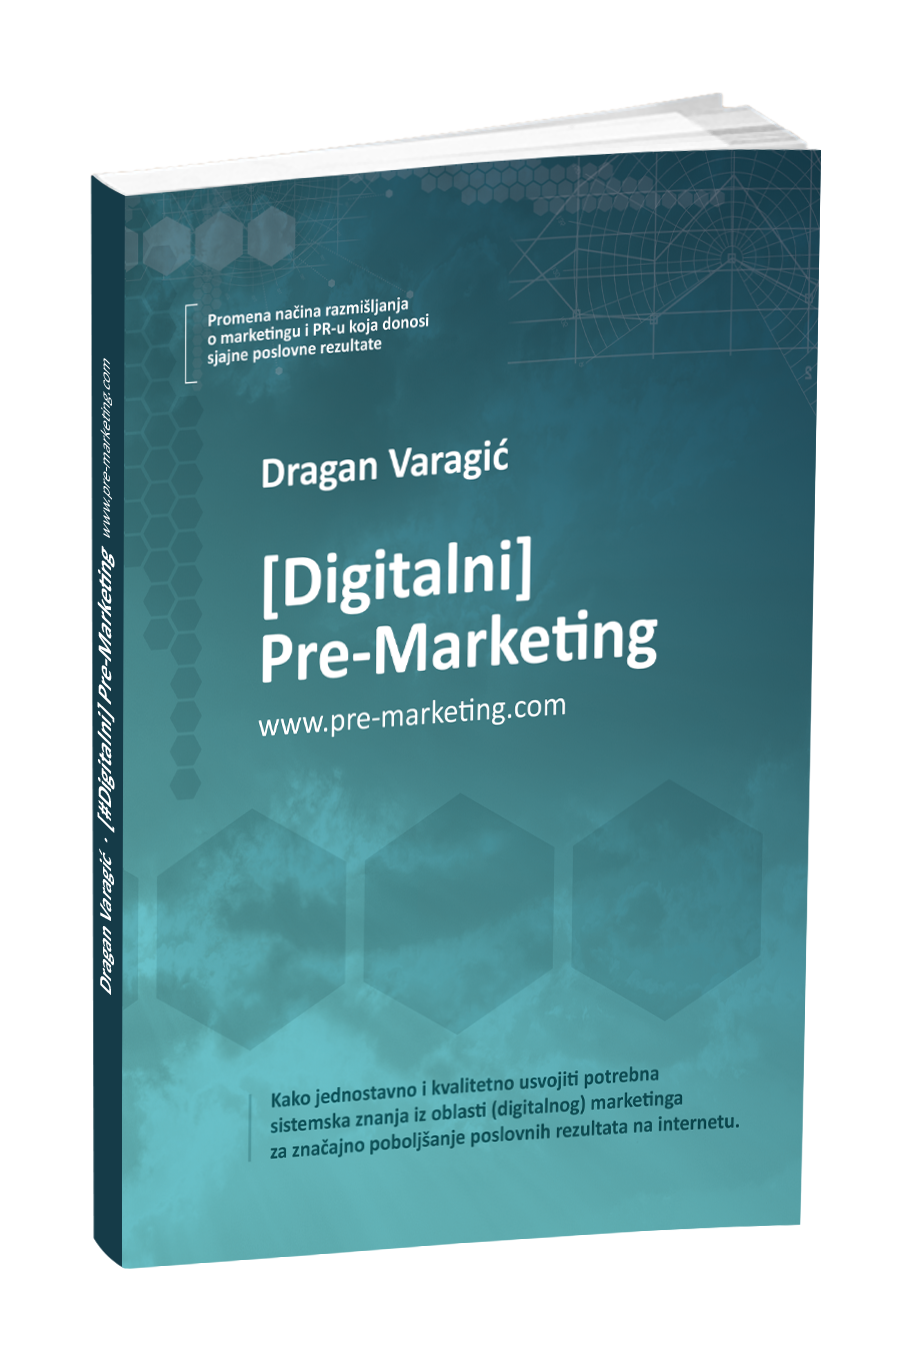 Digitalni Pre-Marketing